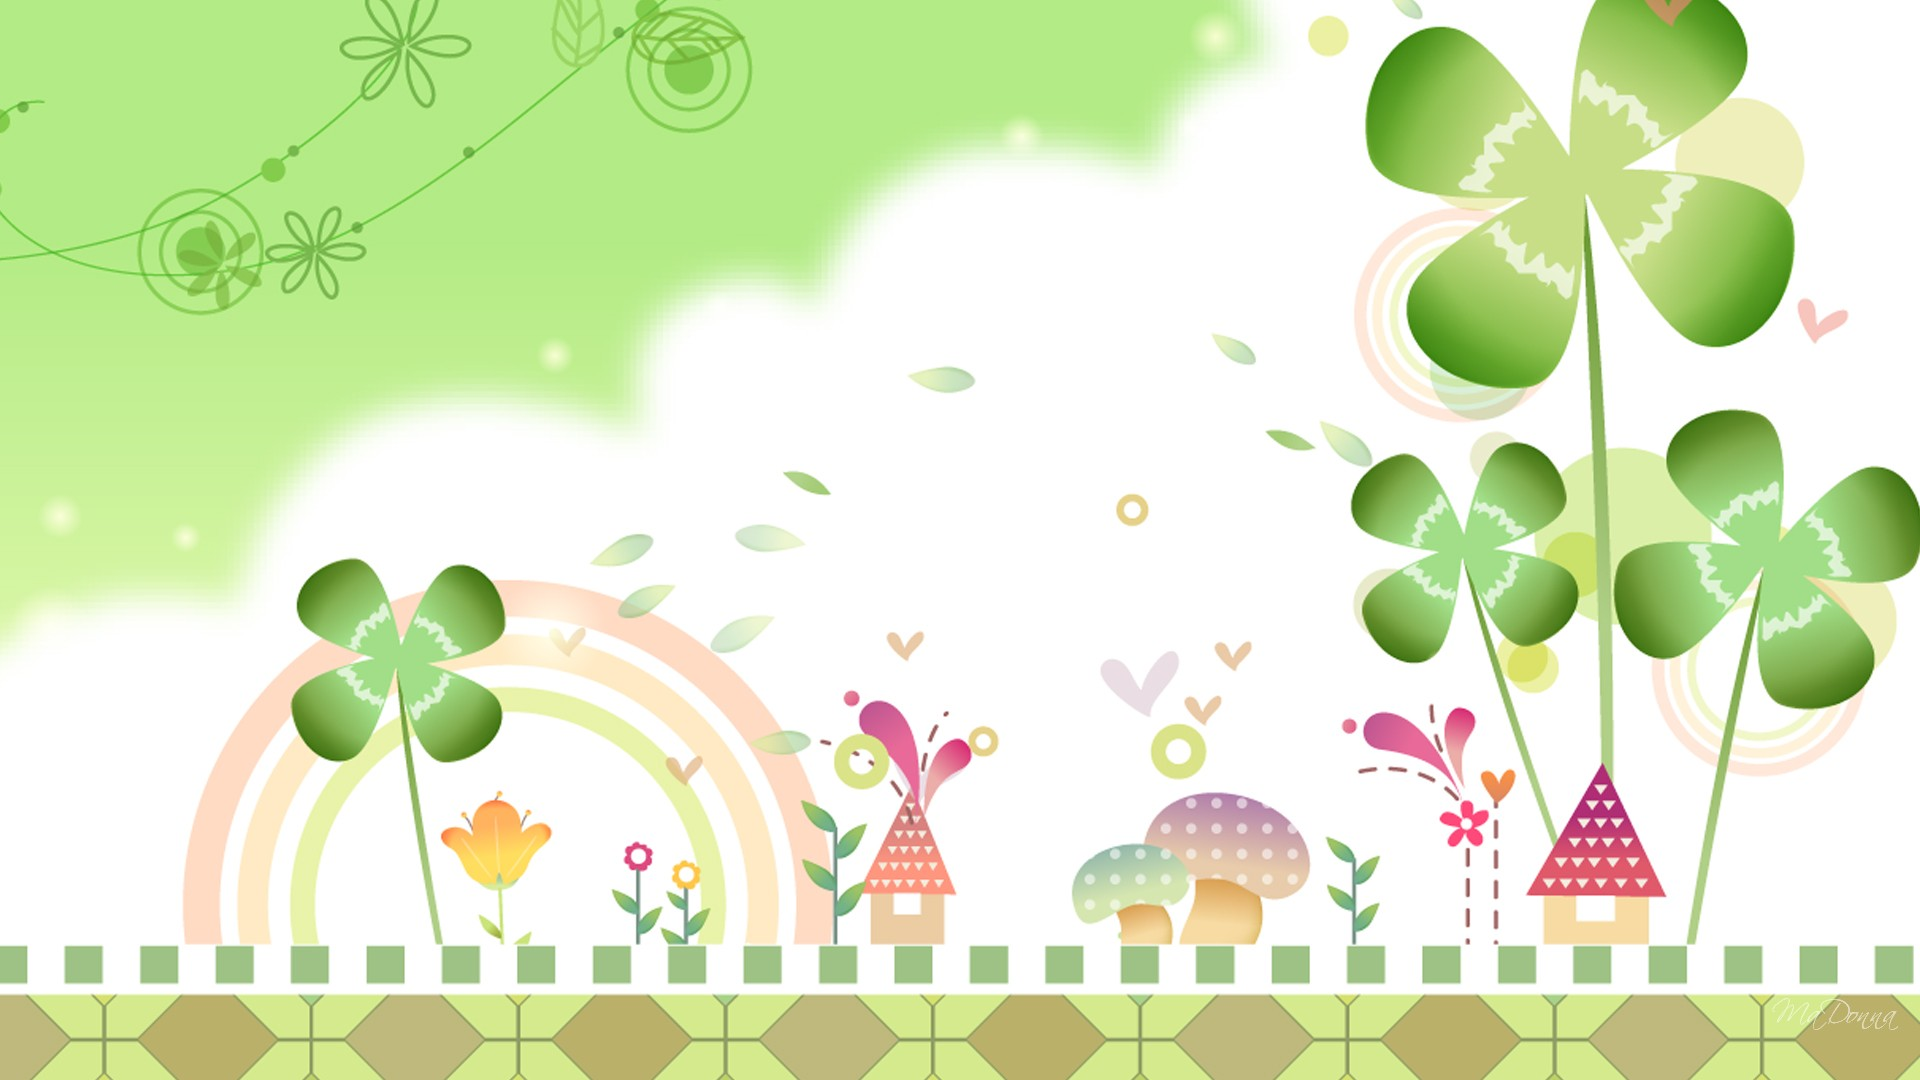 Saint Patrick's Day Full HD - Wallpaper, High Definition, High Quality ...